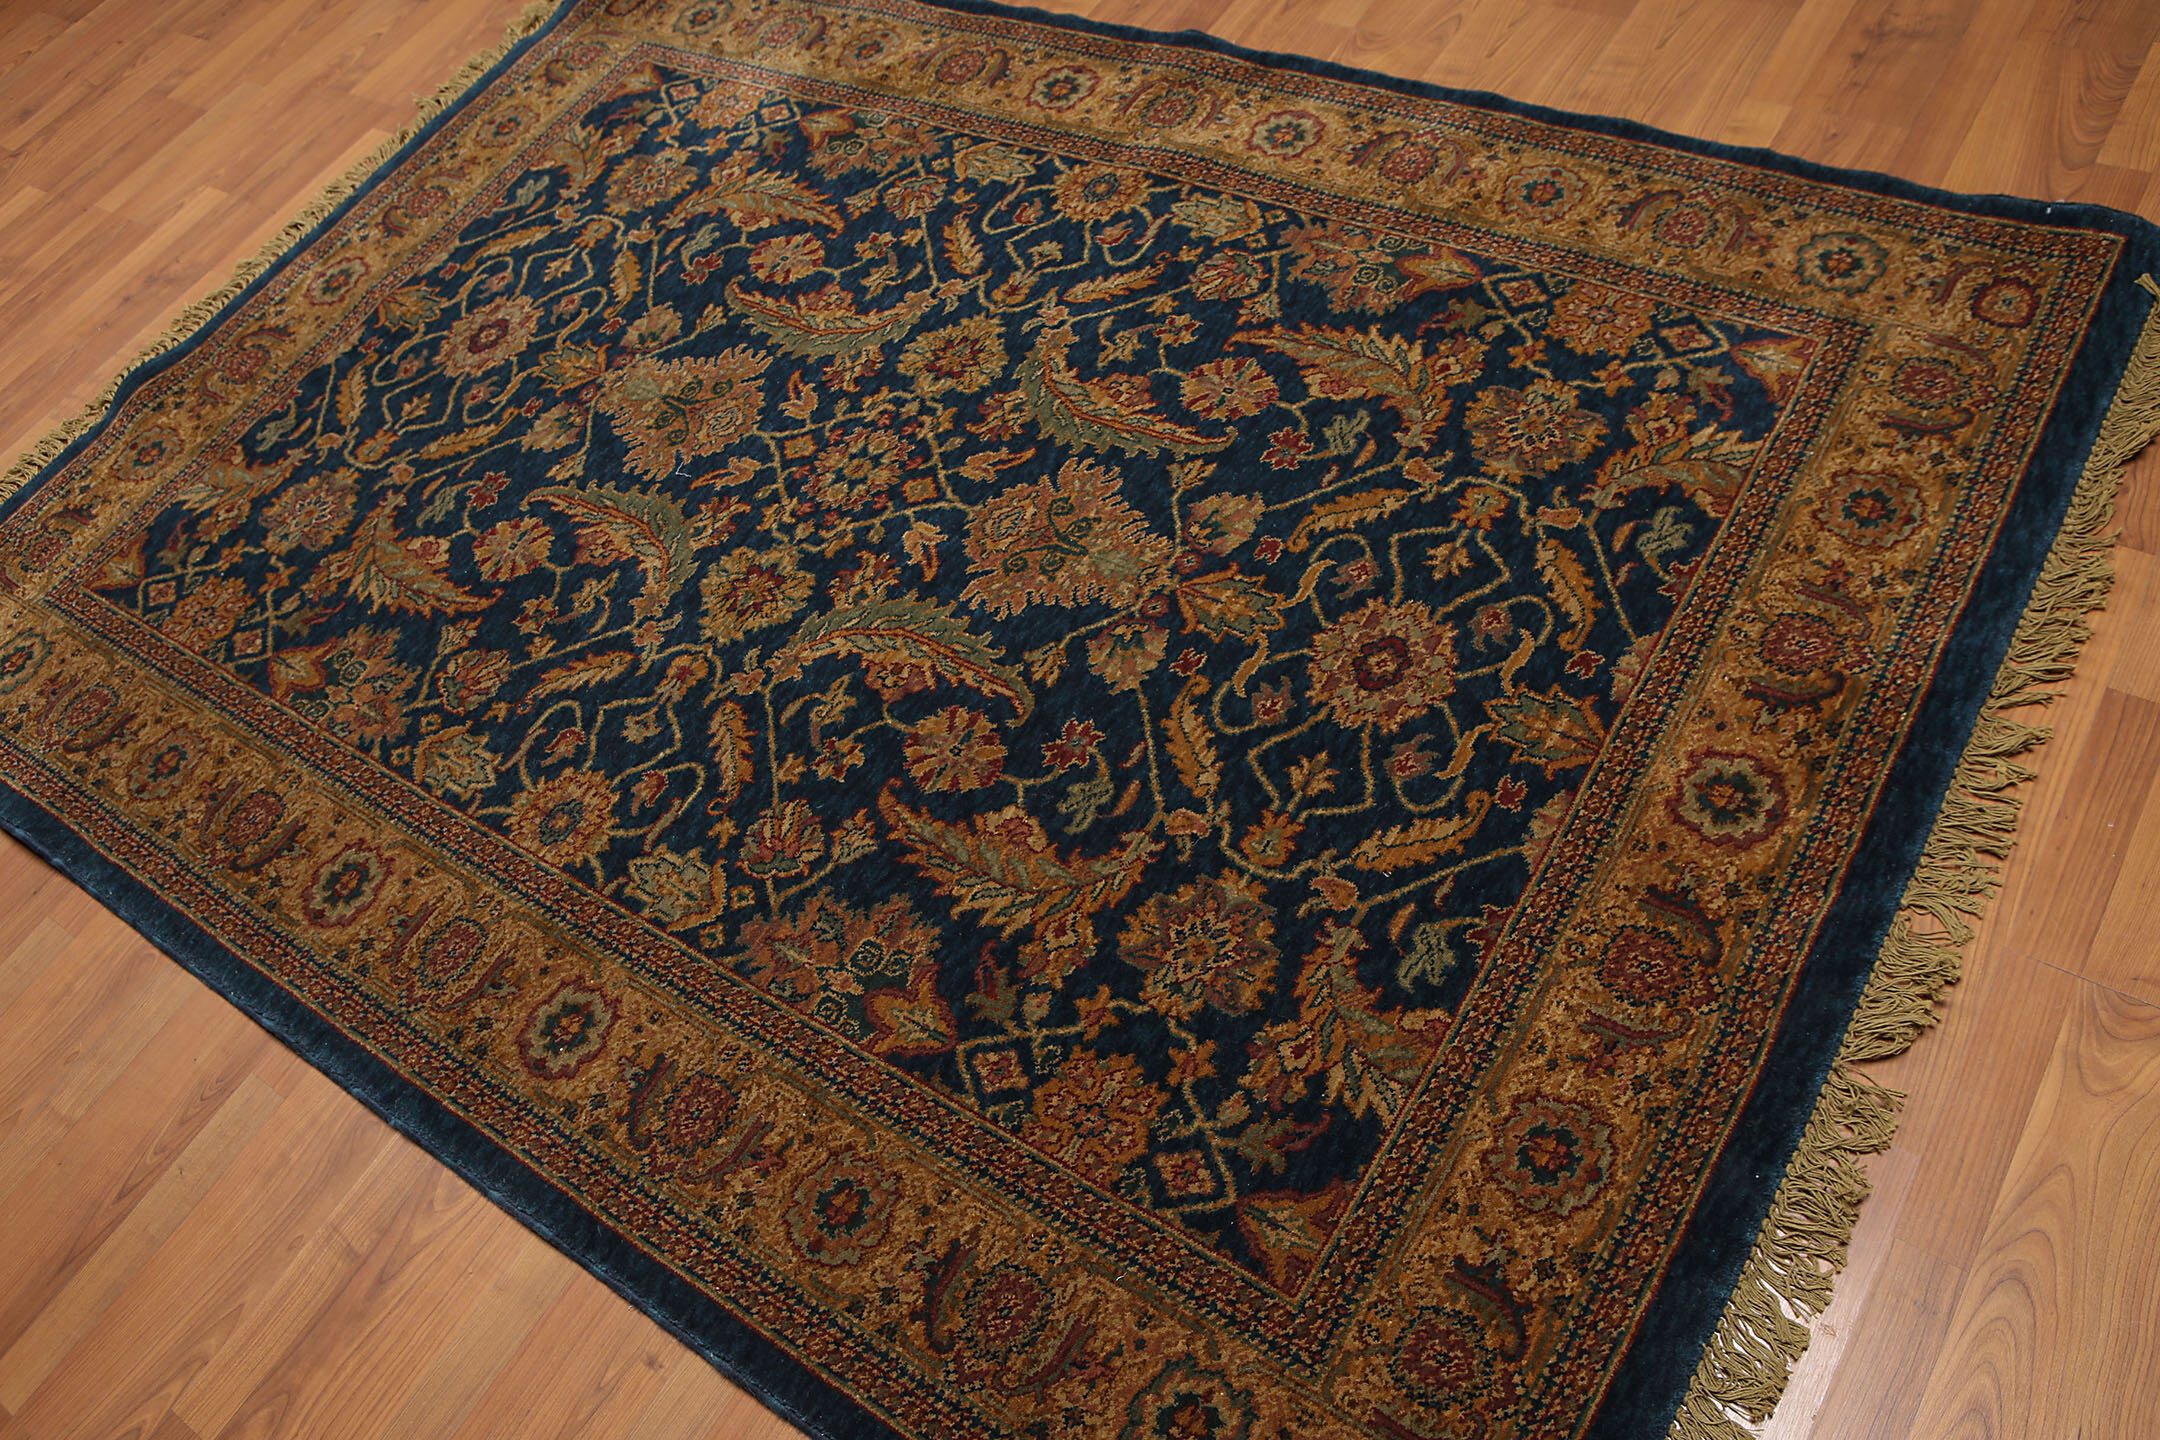 Canora Grey Judy Traditional Wool Blue Brown Gold Area Rug